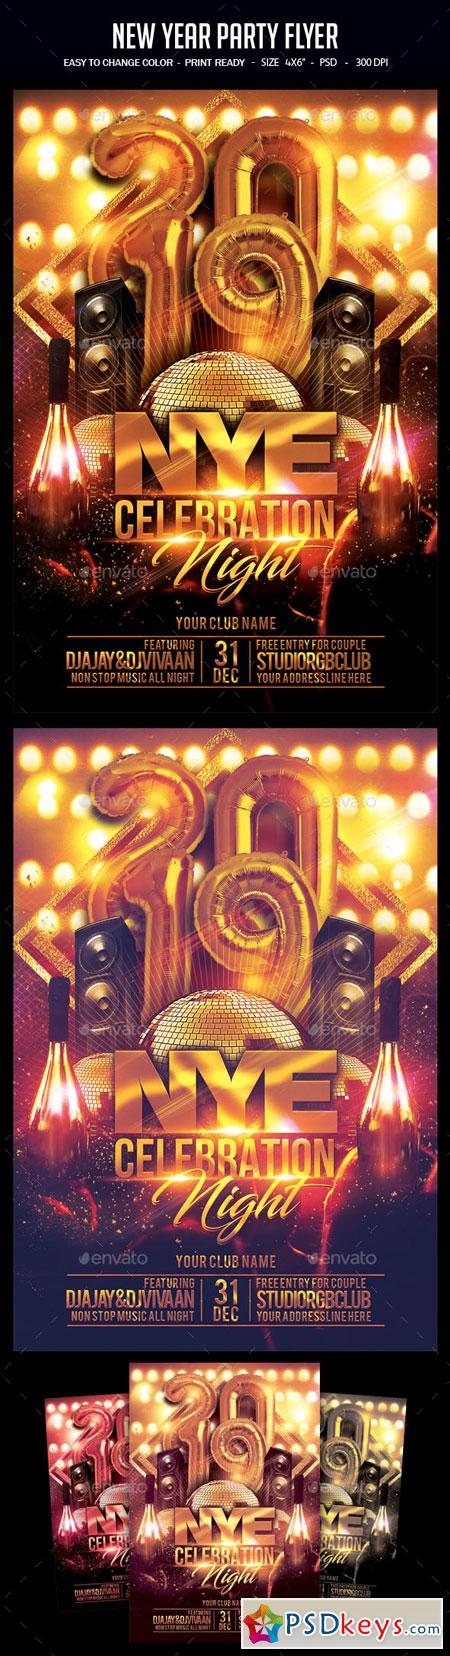 New Year Party Flyer 22827145